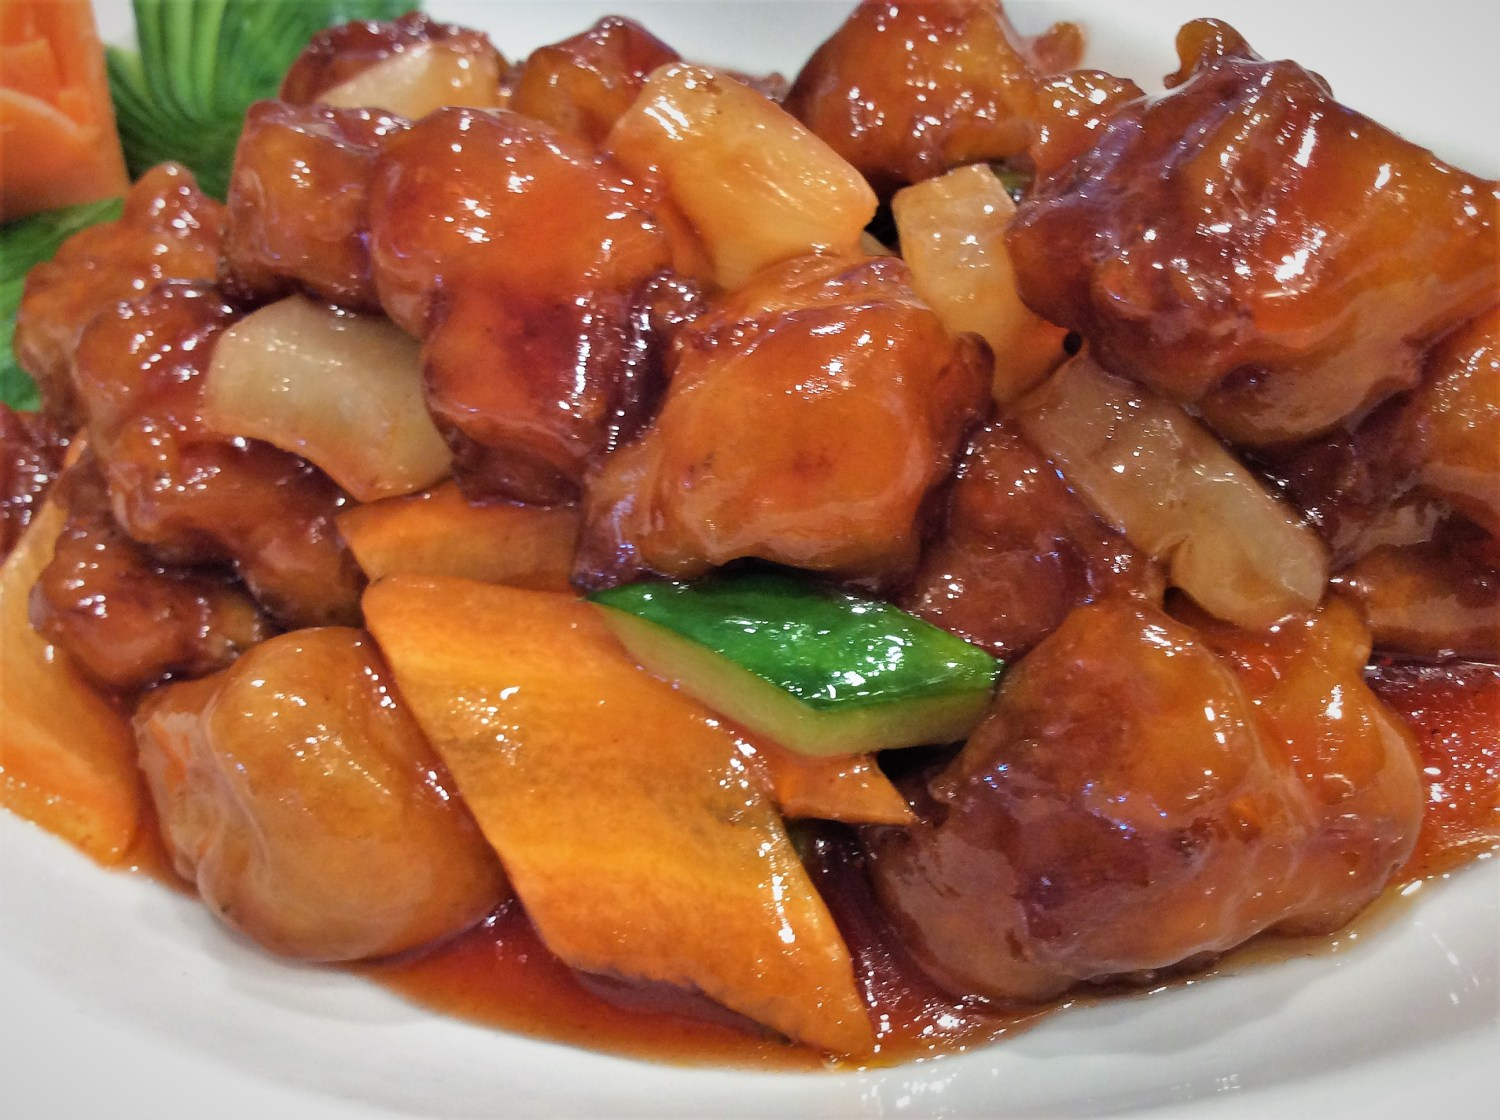 Saturday night chinese sweet and sour pork from the heart of the chinese food forumfinder Images